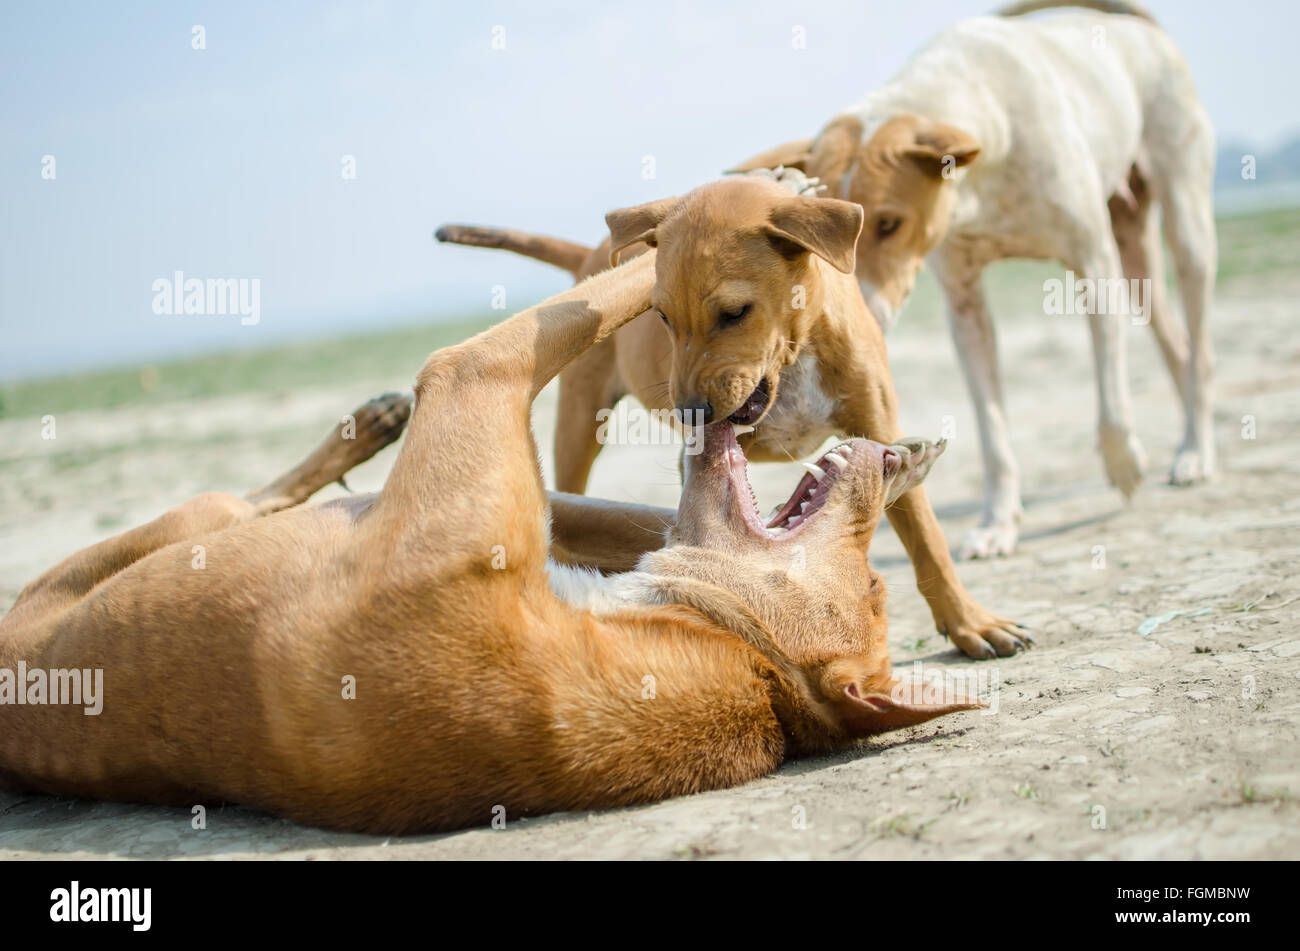 A dog family - Stock Image